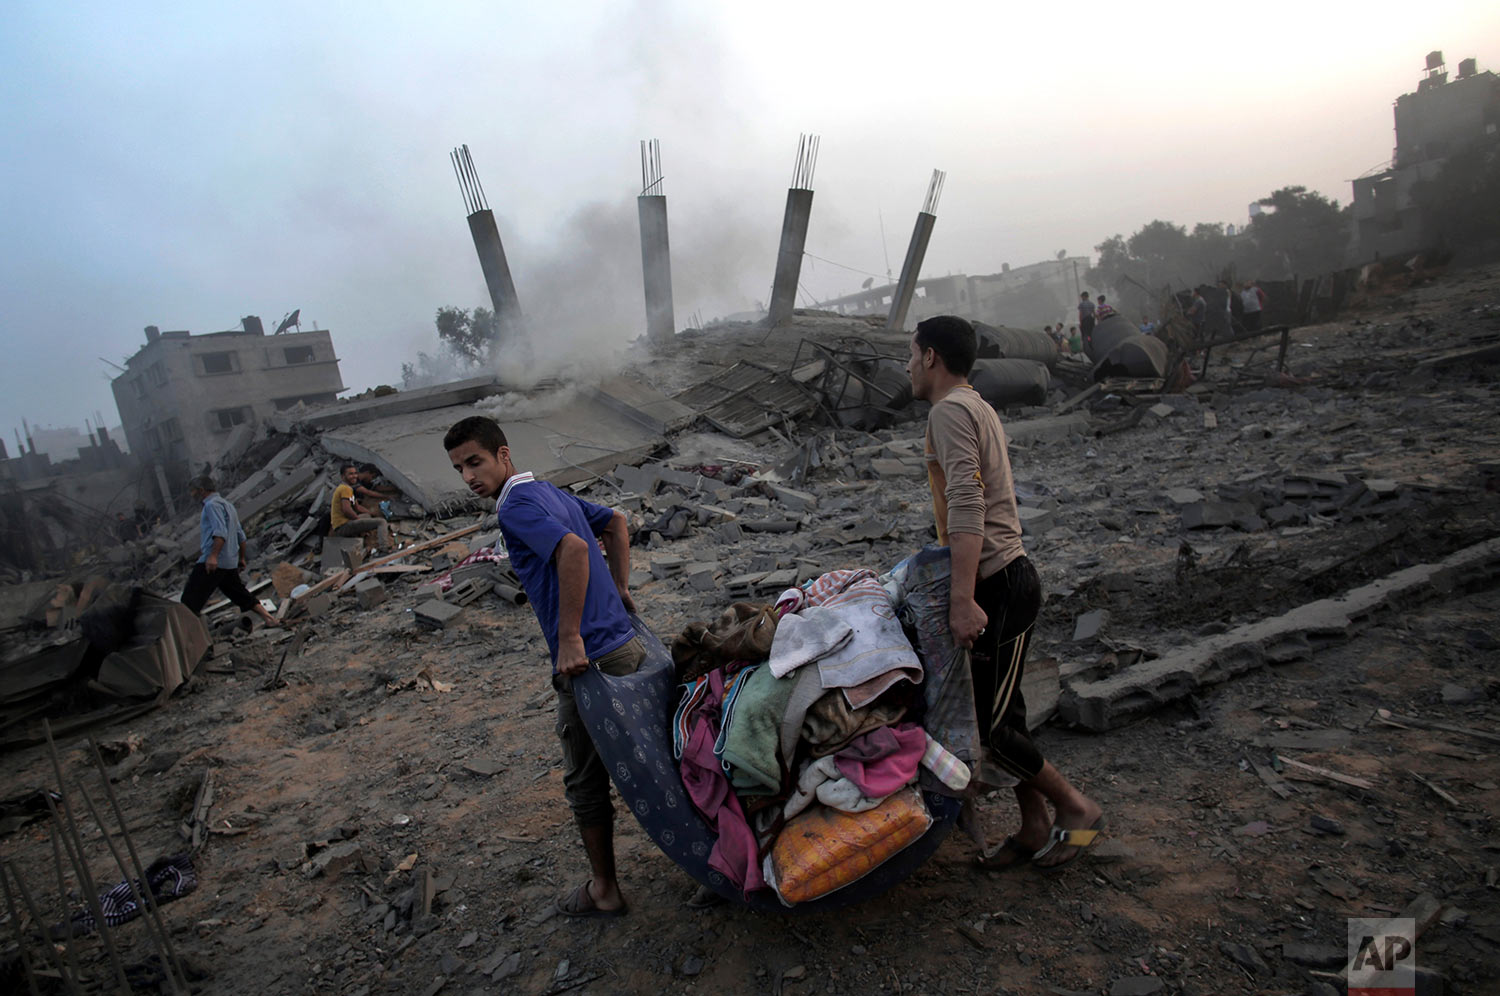 In this July 8, 2014 photo, Palestinians try to salvage what they can of their belongings from the rubble of a house destroyed by an overnight Israeli airstrike in Gaza City. (AP Photo/Khalil Hamra)